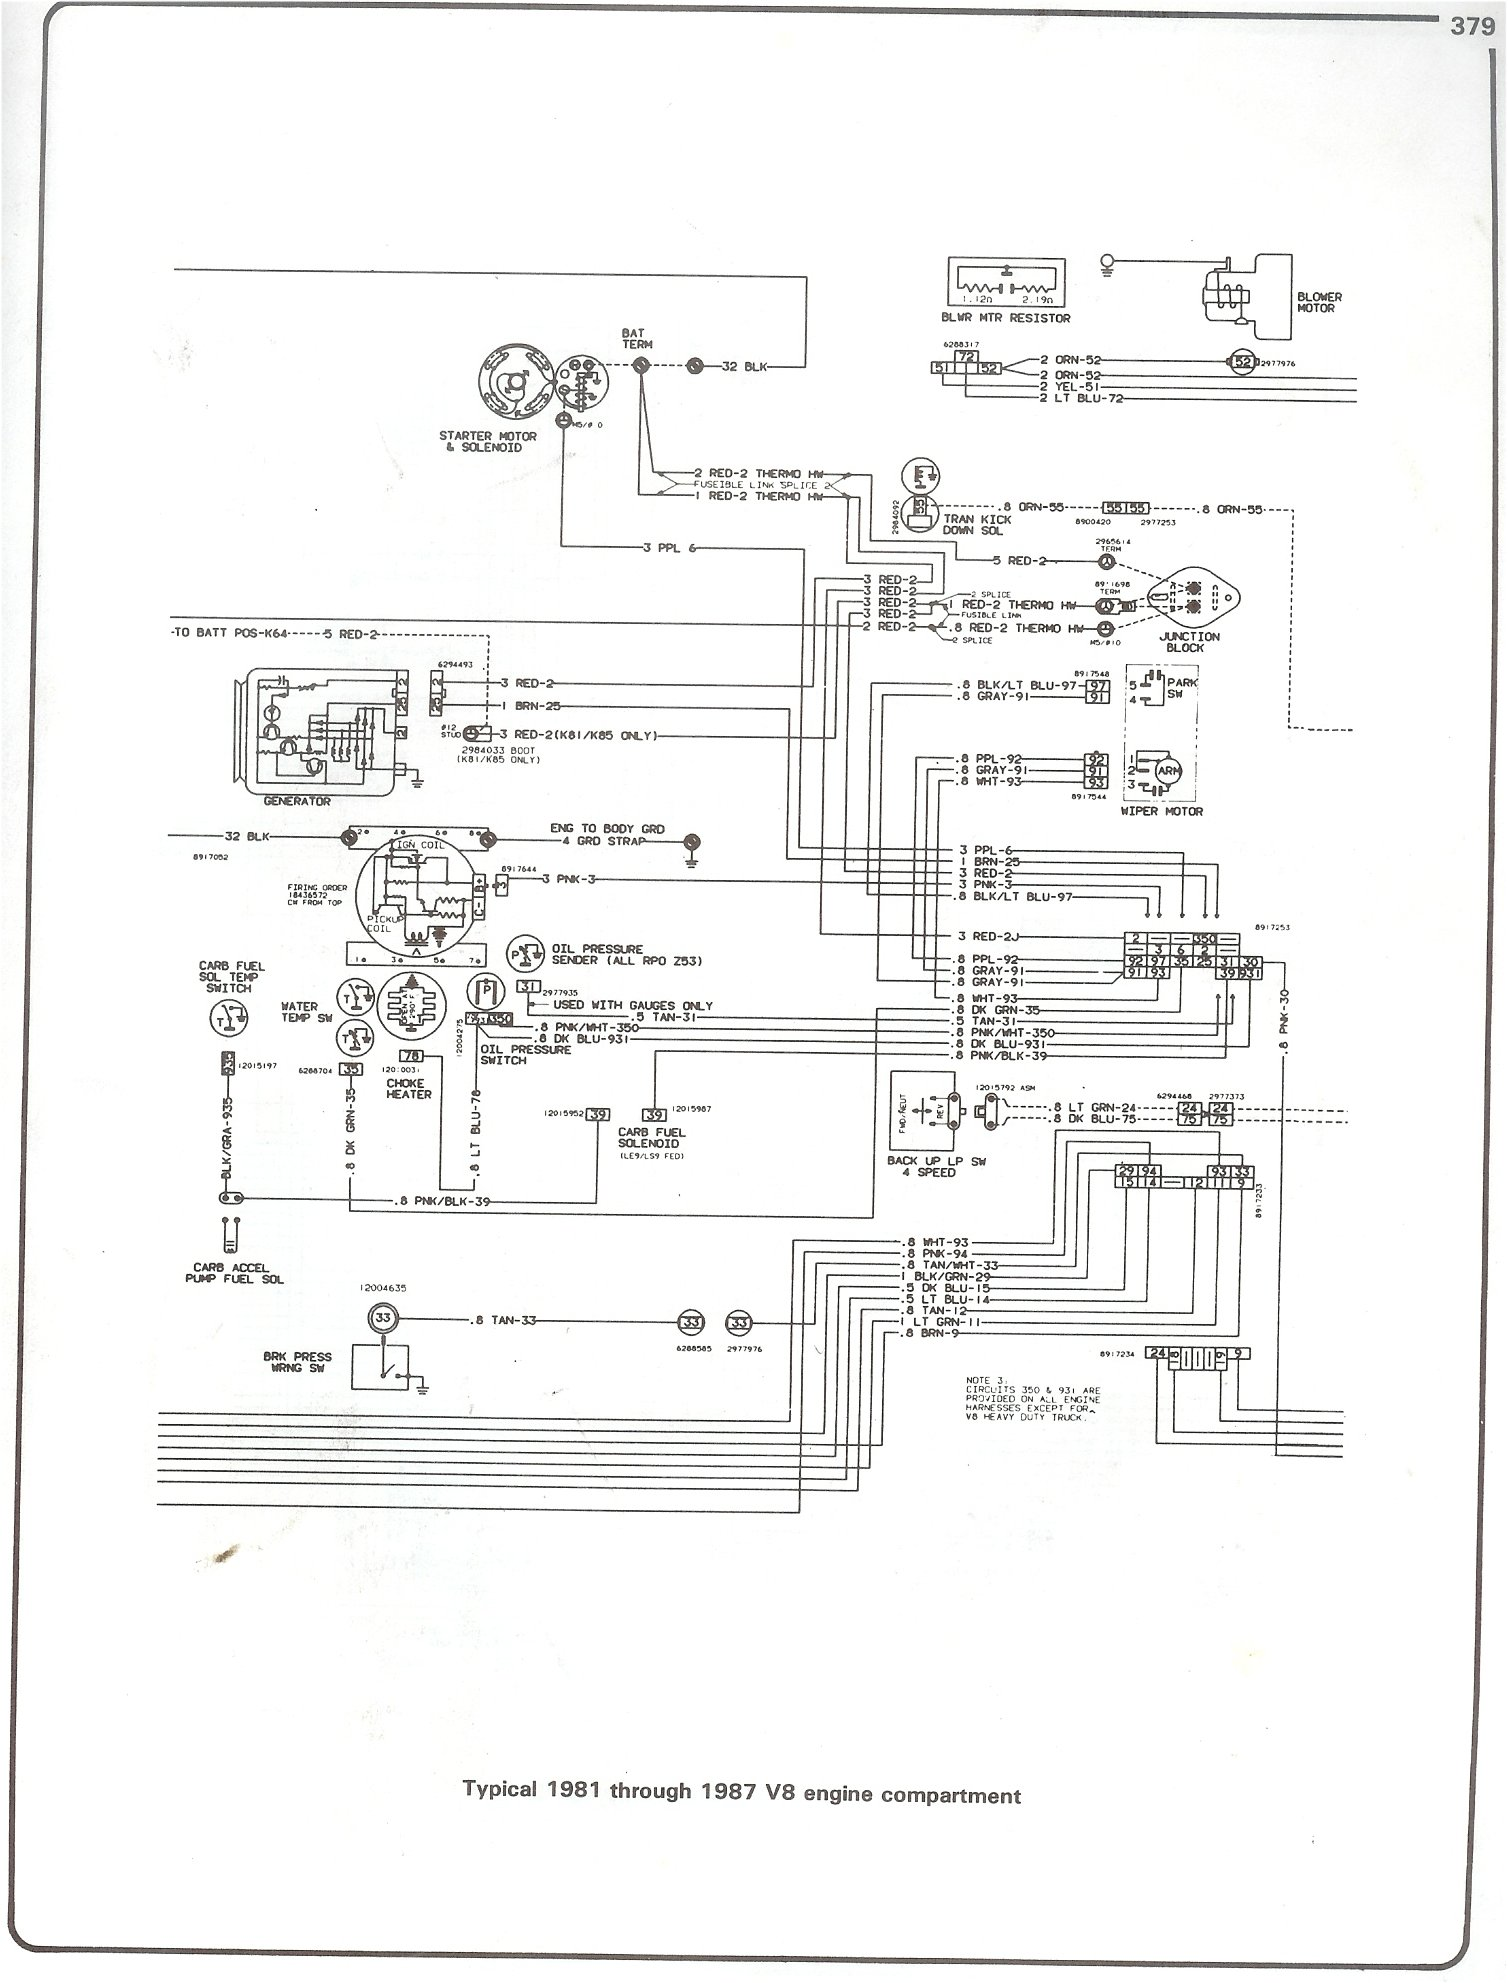 Index php furthermore RepairGuideContent together with Turbo 280zx Wiring Diagram besides Fuel Line Replacement additionally Catalog3. on 1984 corvette wiring diagrams